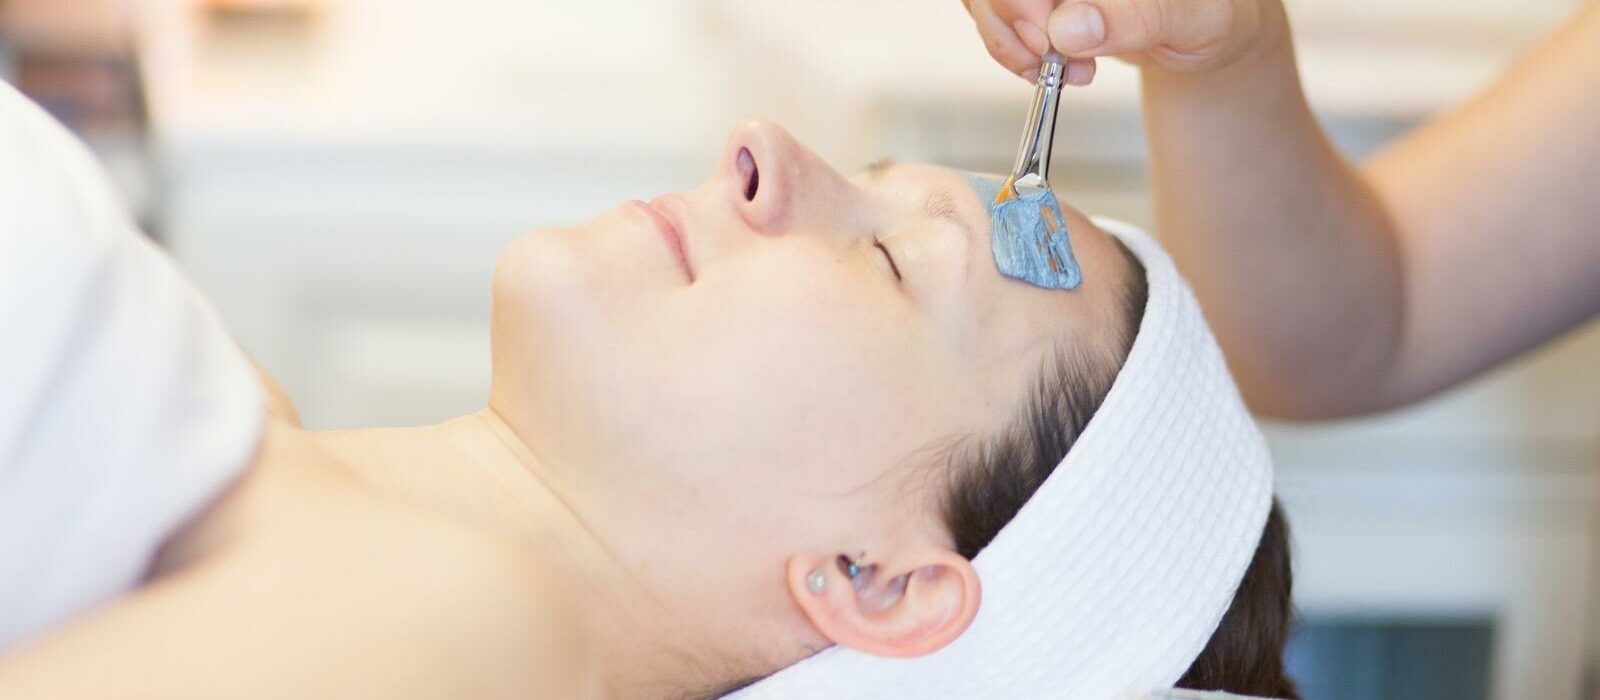 Limited Time Offer! Holiday Glitz & Glow Facial!